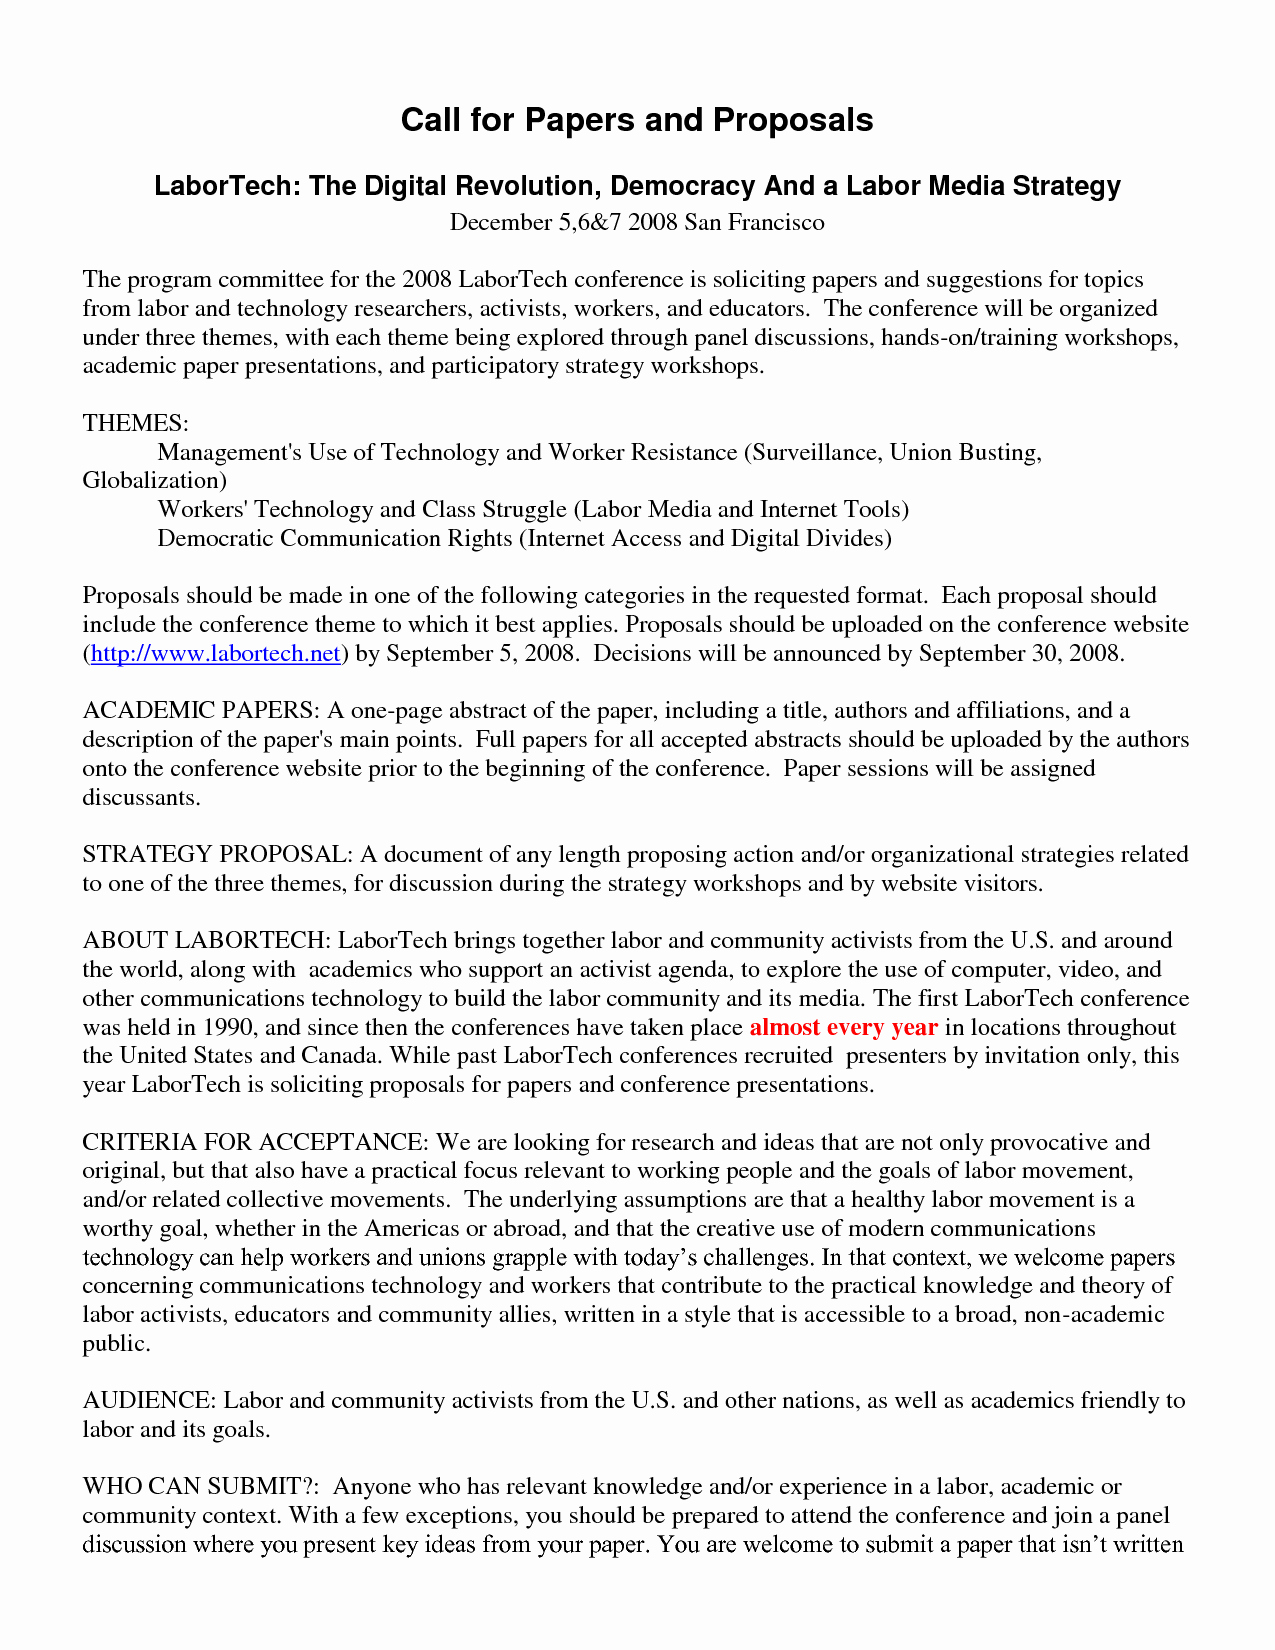 One Page Proposal Template Doc Fresh Florida Literacy Coalition Literacy Resources Research